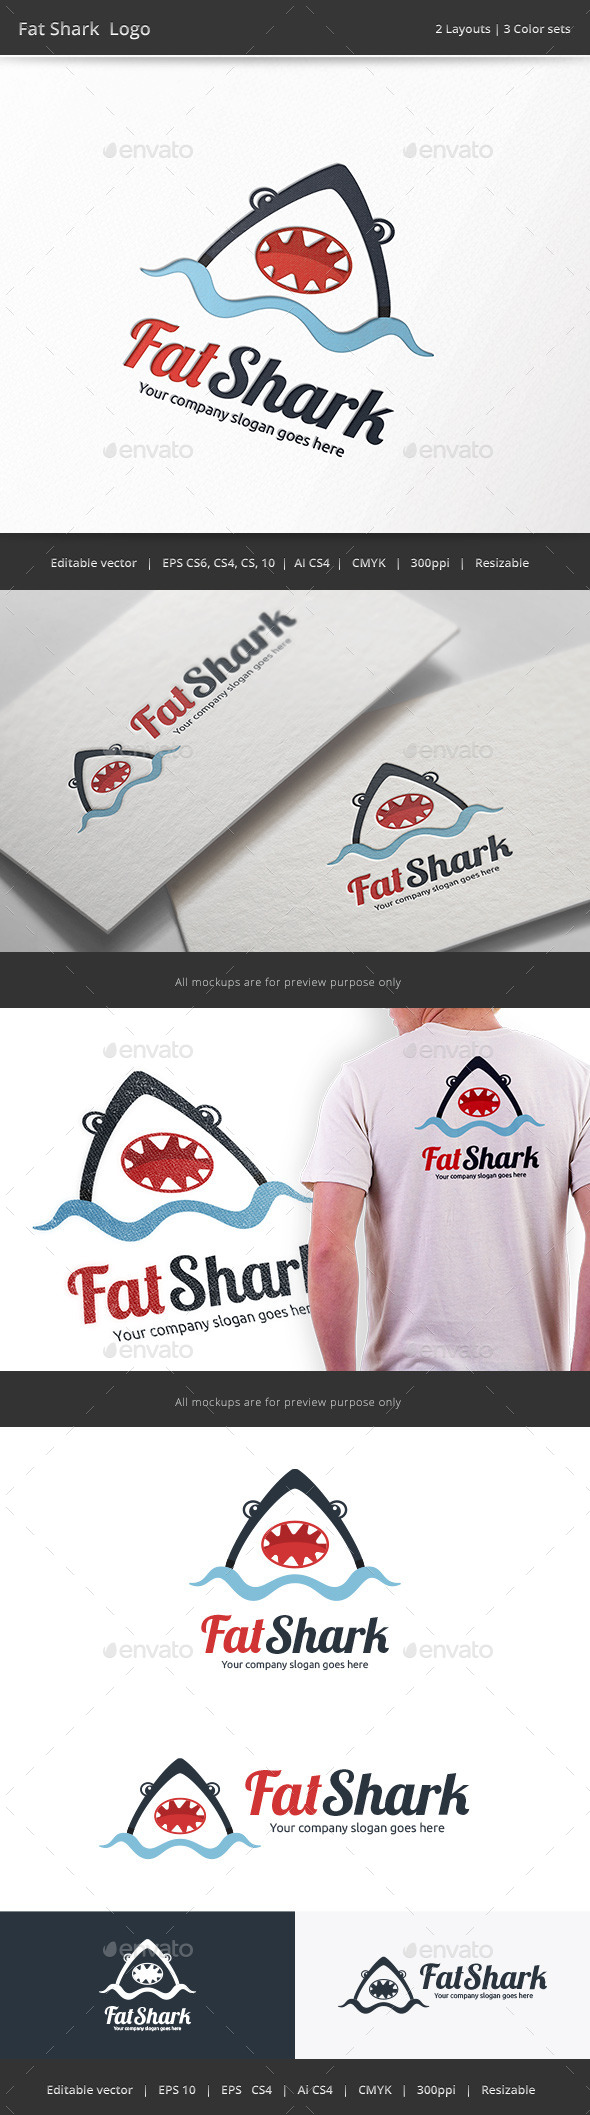 GraphicRiver Fat Shark Logo 9788750